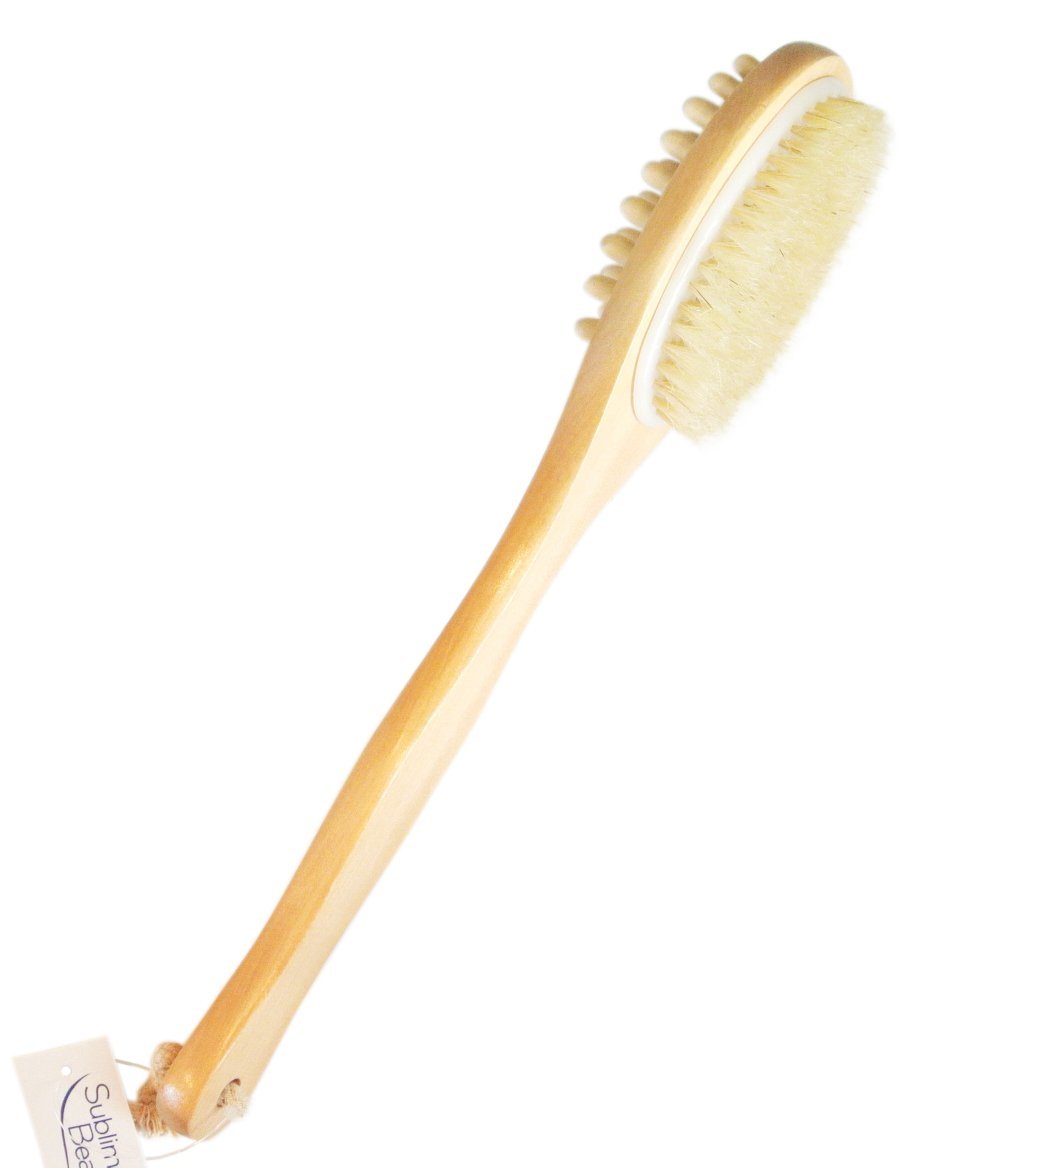 Sublime Beauty HEALTHY ORIGINAL BODY BRUSH for Well-Being. Includes HOW-TO GUIDE. Ancient Art for Circulation & Glowing Skin. Top Skin Brush, Long Handle, Natural Bristles. 100% Moneyback Guarantee